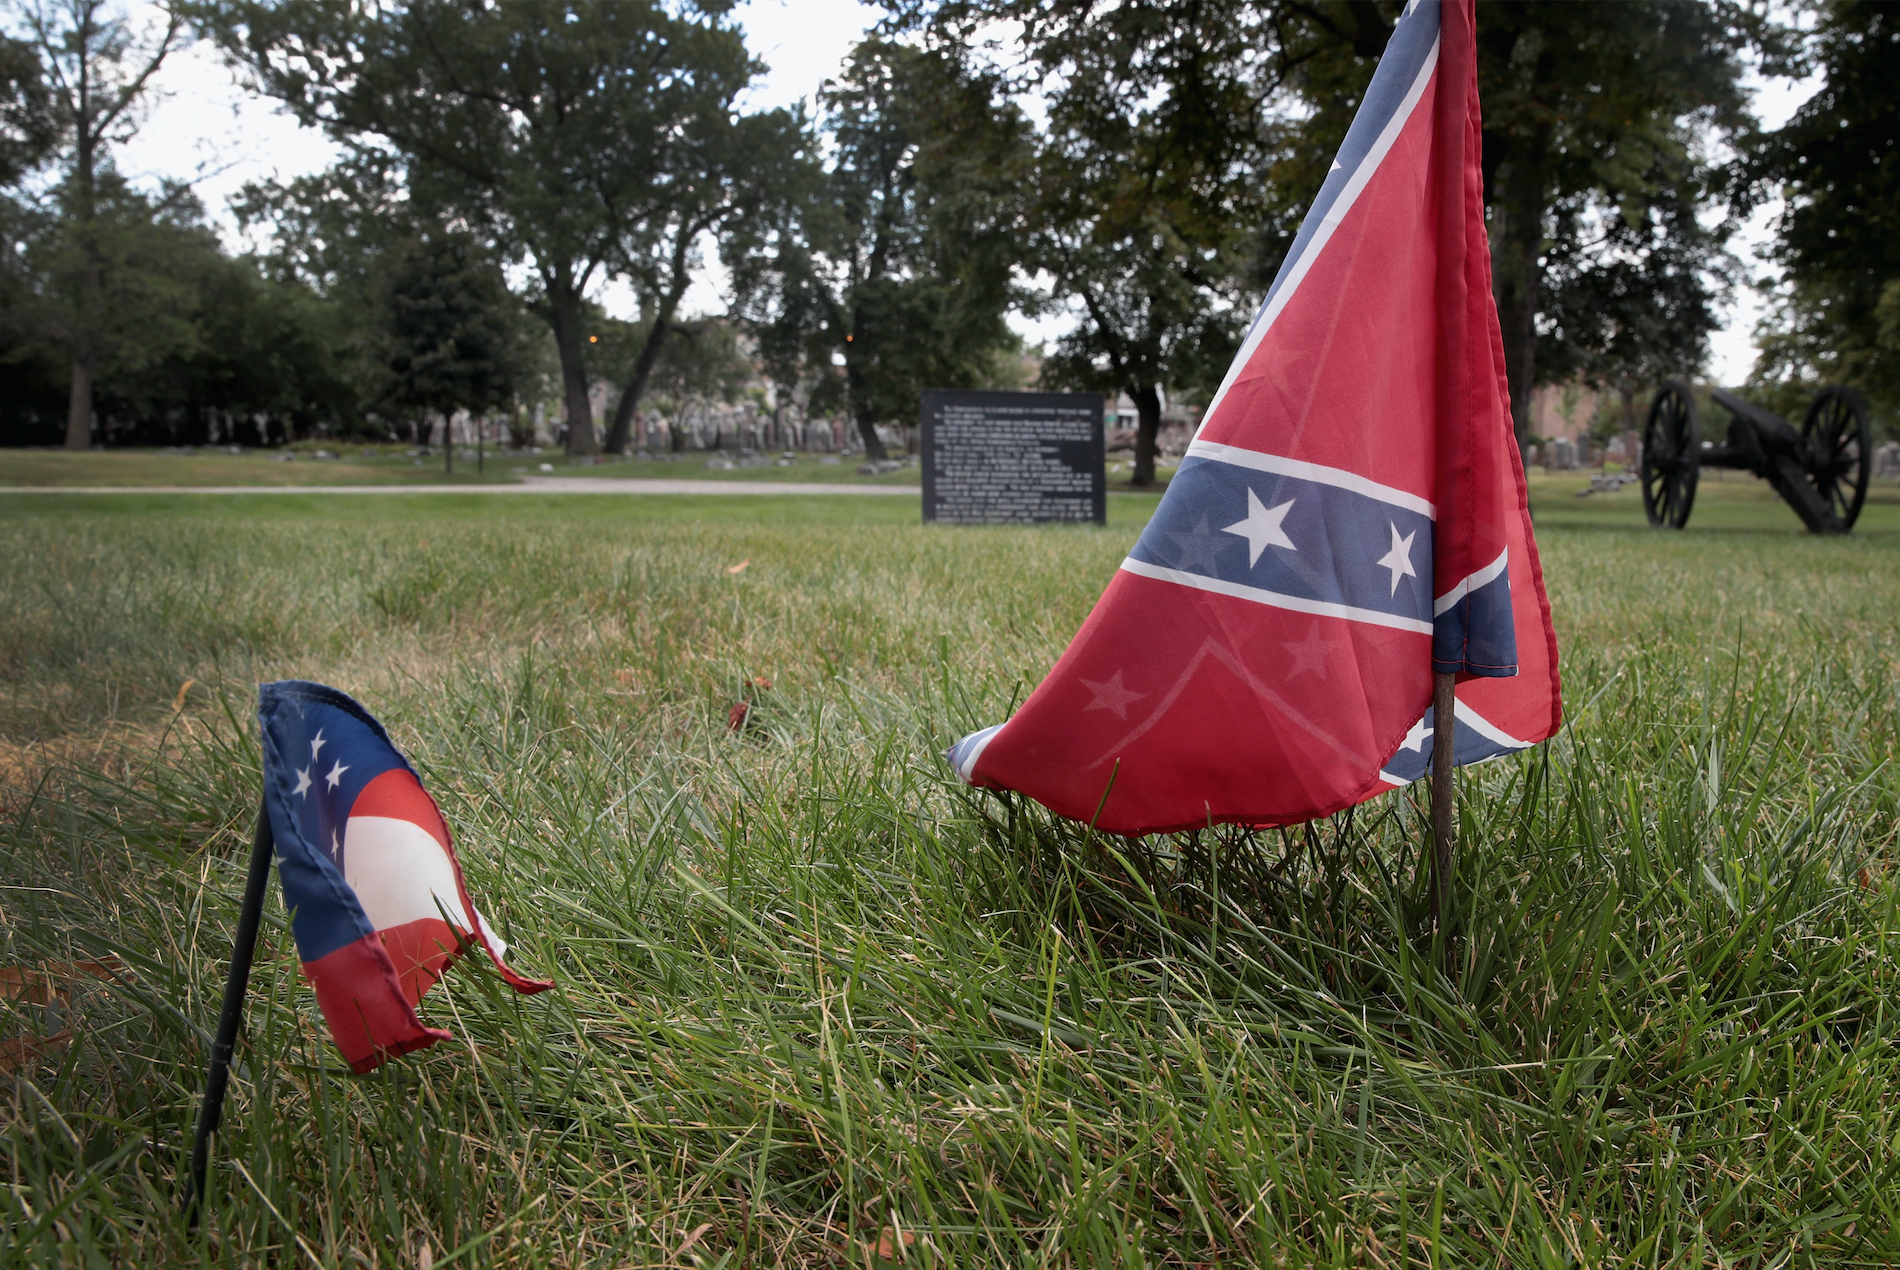 Confederate Flags (Photo by Scott Olson/Getty Images)